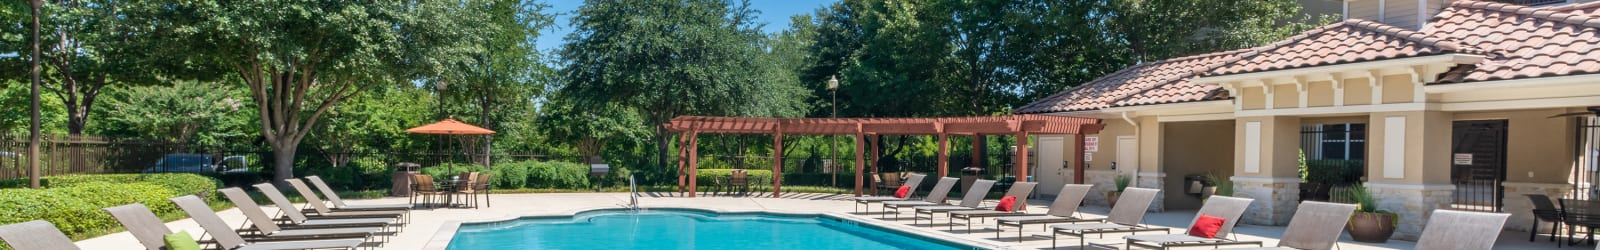 Schedule a tour at Estancia at Ridgeview Ranch in Plano, Texas